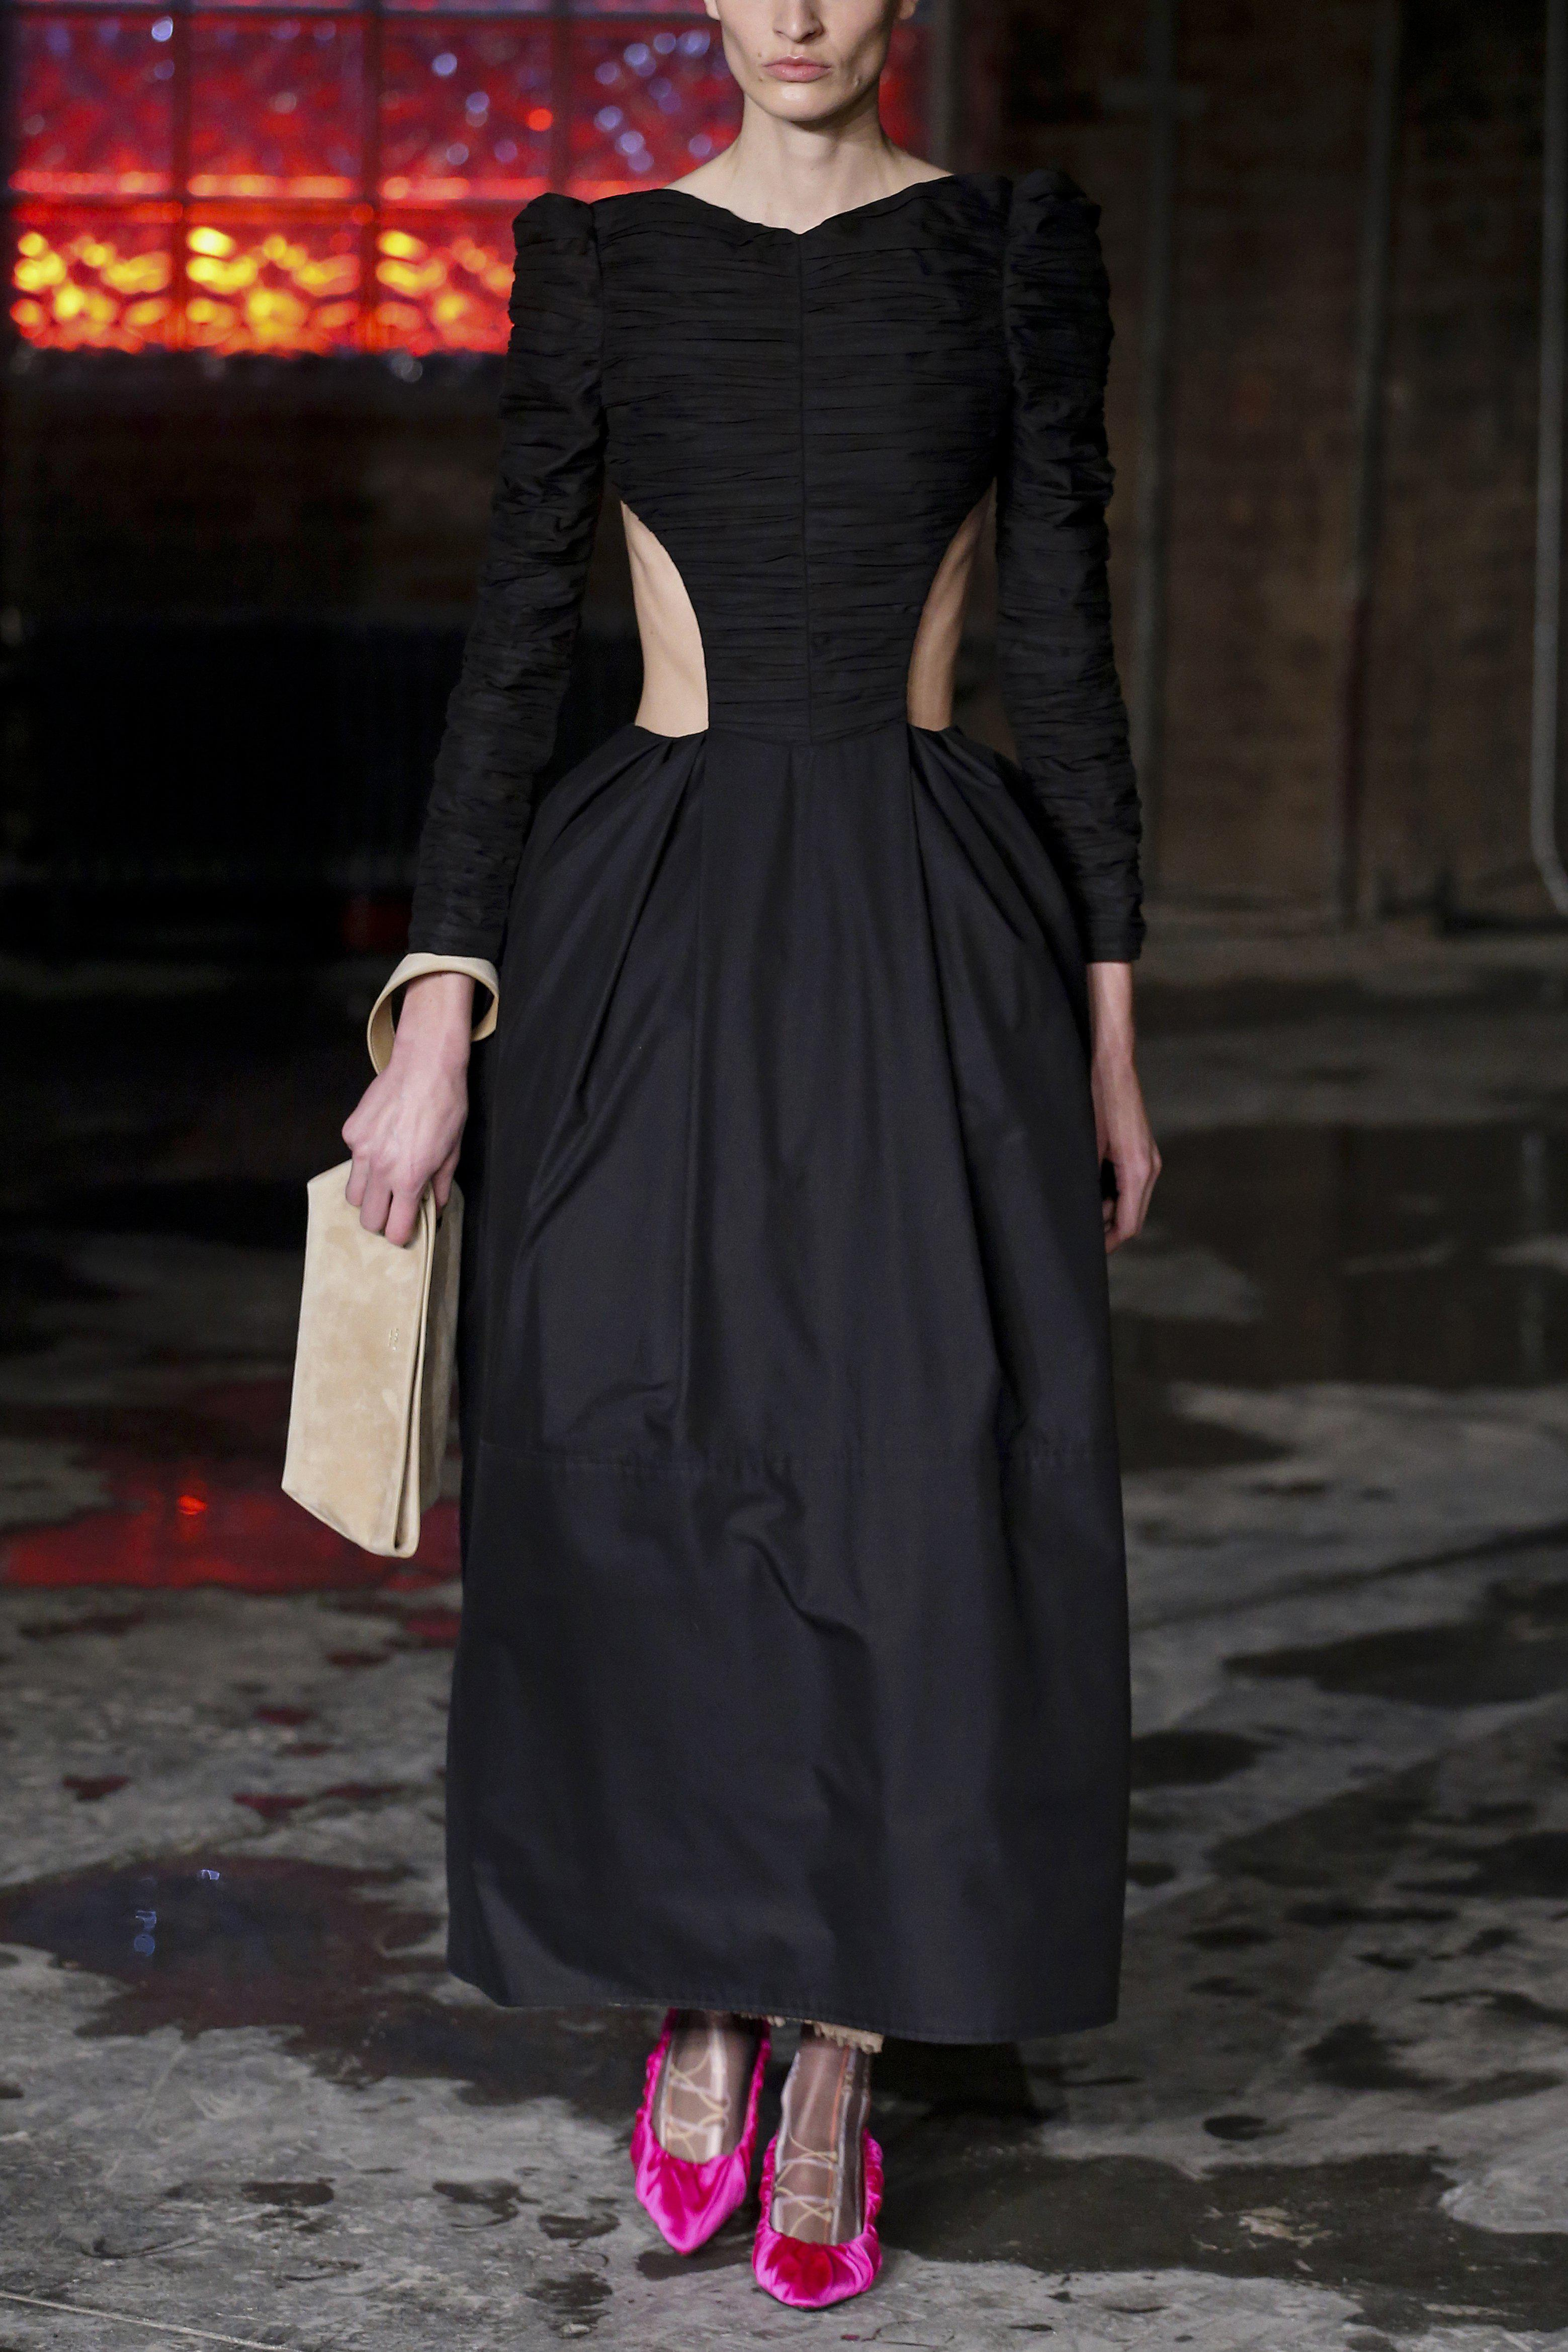 The Rosaline Dress with Petticoat in Black 5